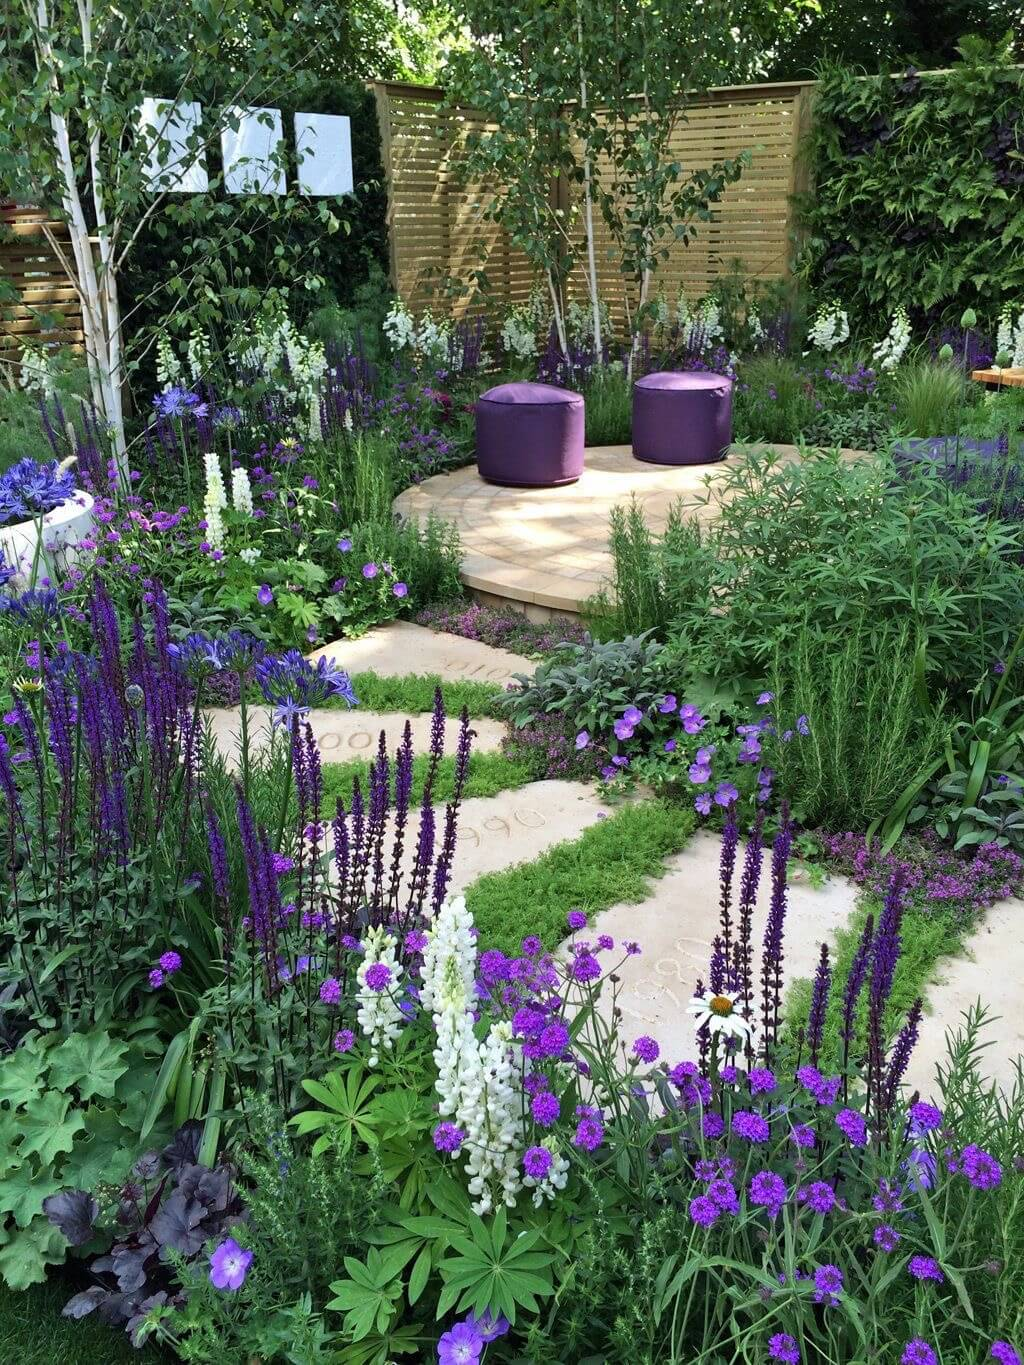 2 simple stone pathway sets off beautiful plants - Garden Path Ideas